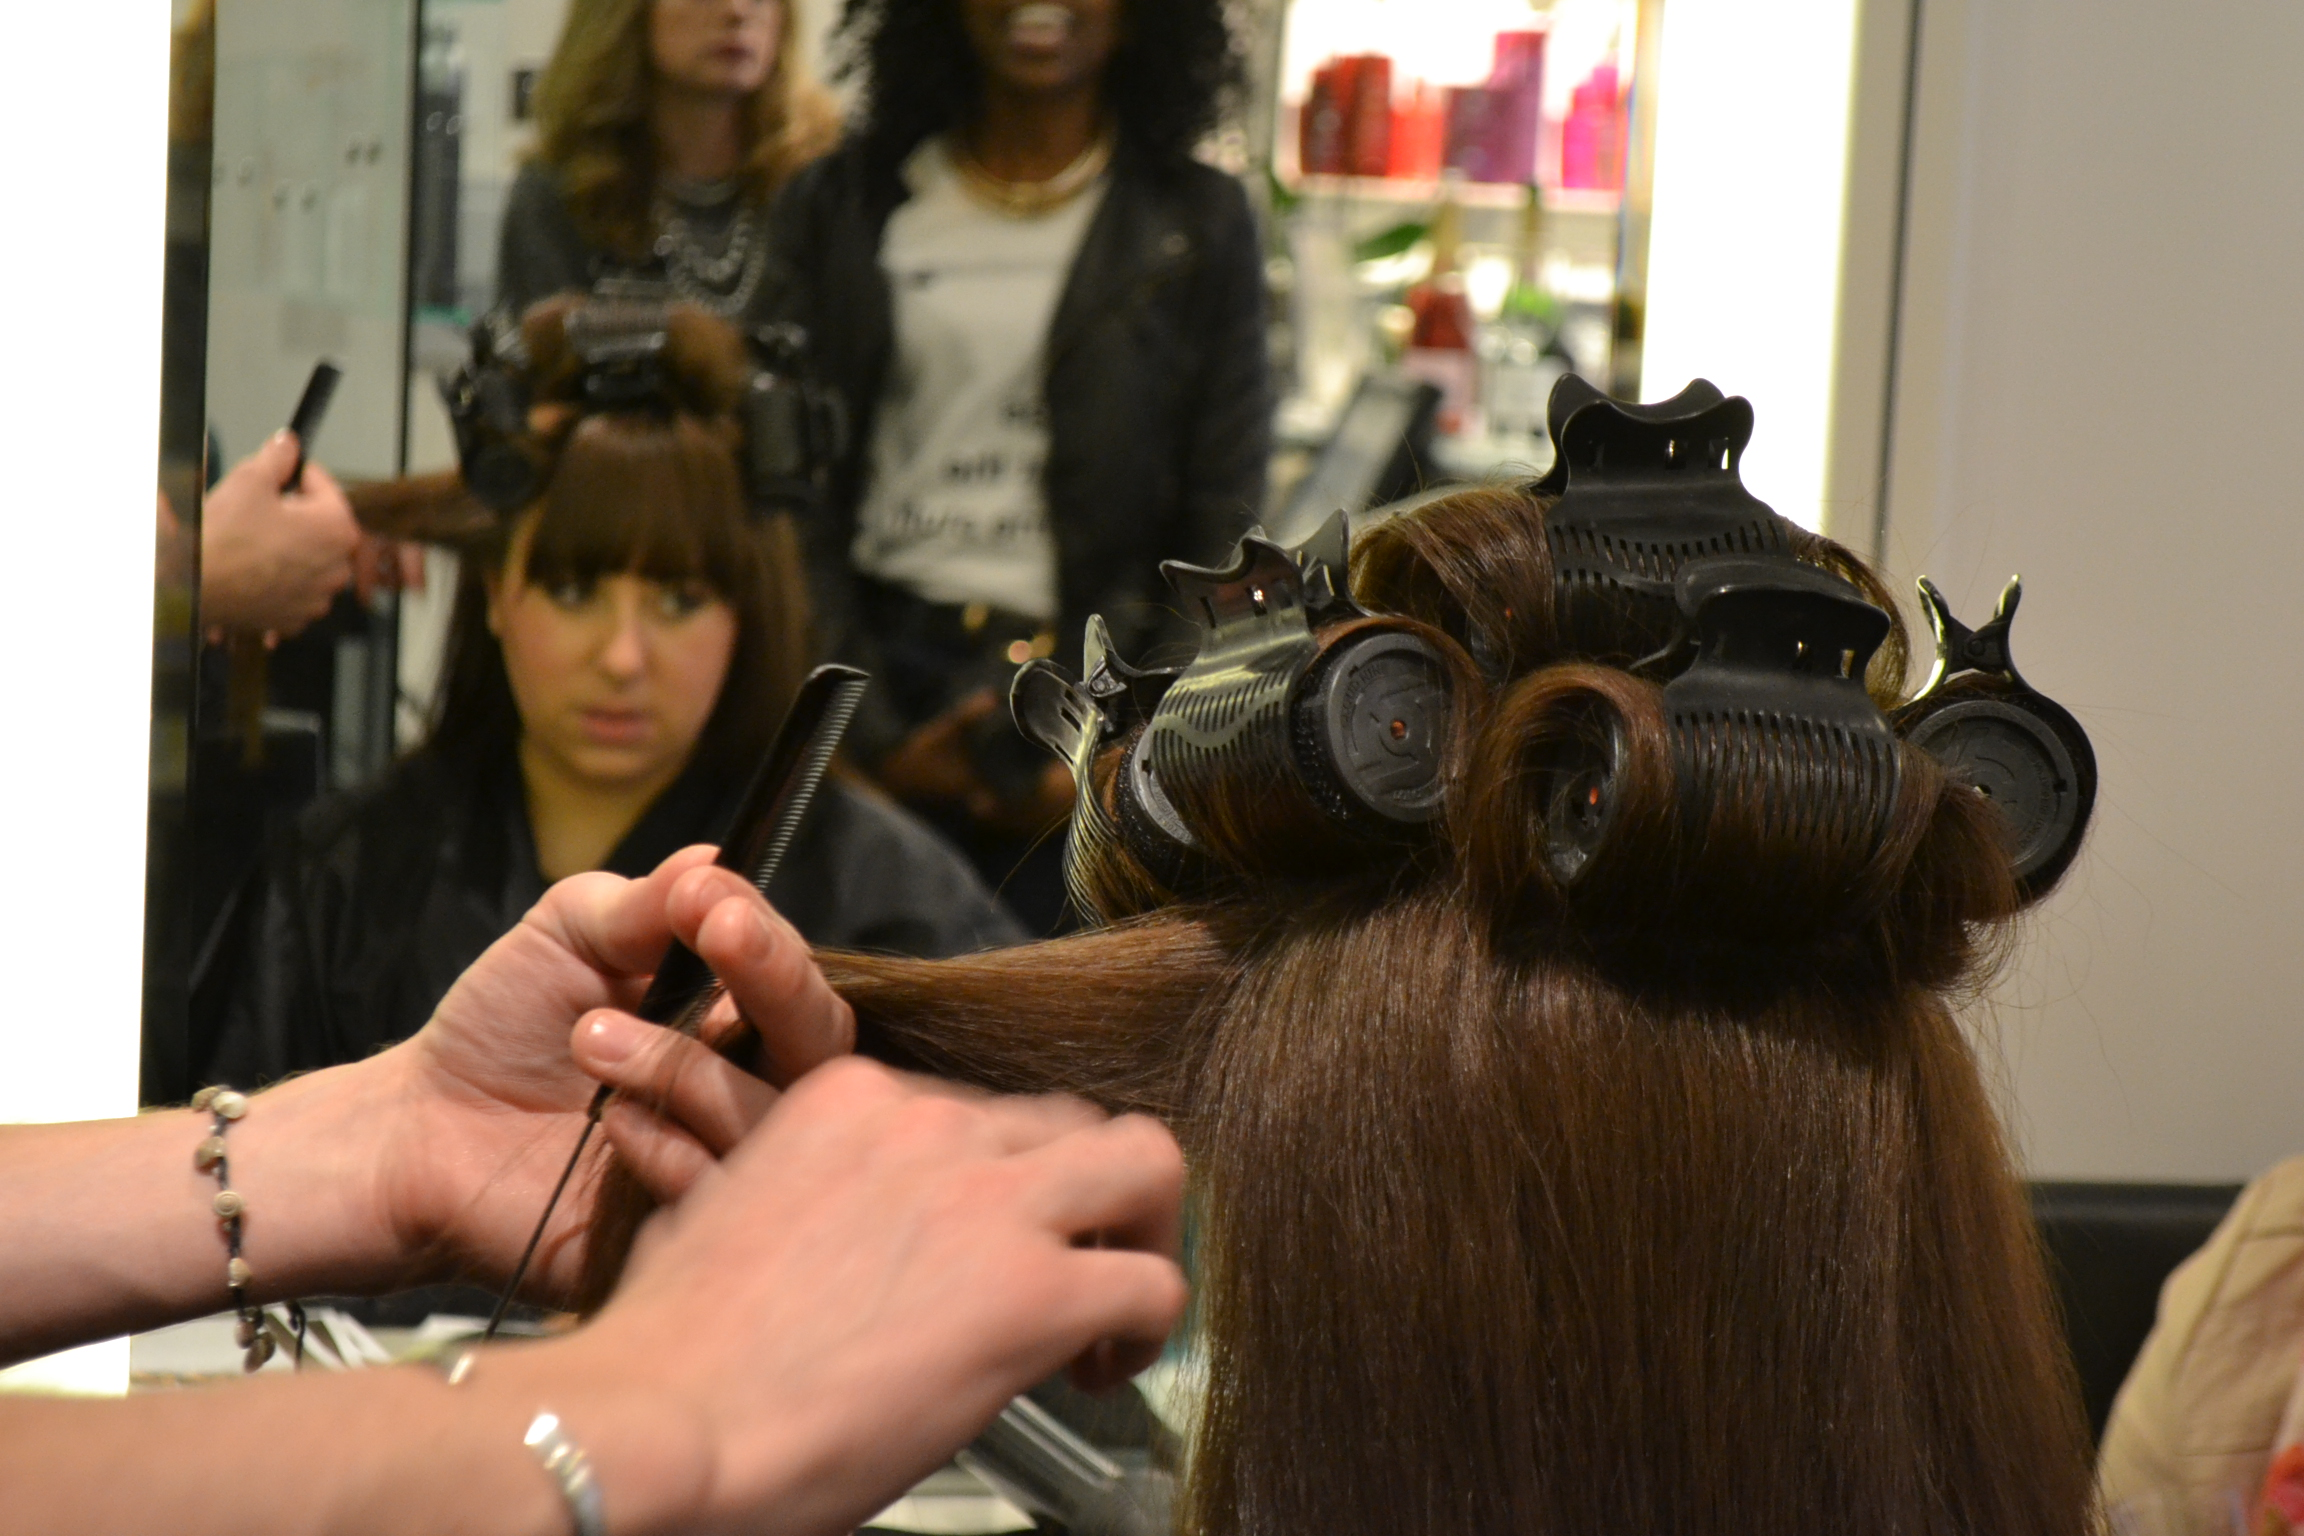 daisybutter - UK Style and Fashion Blog: cloud nine, cloud nine blogger event, know your hair, heat styling ideas